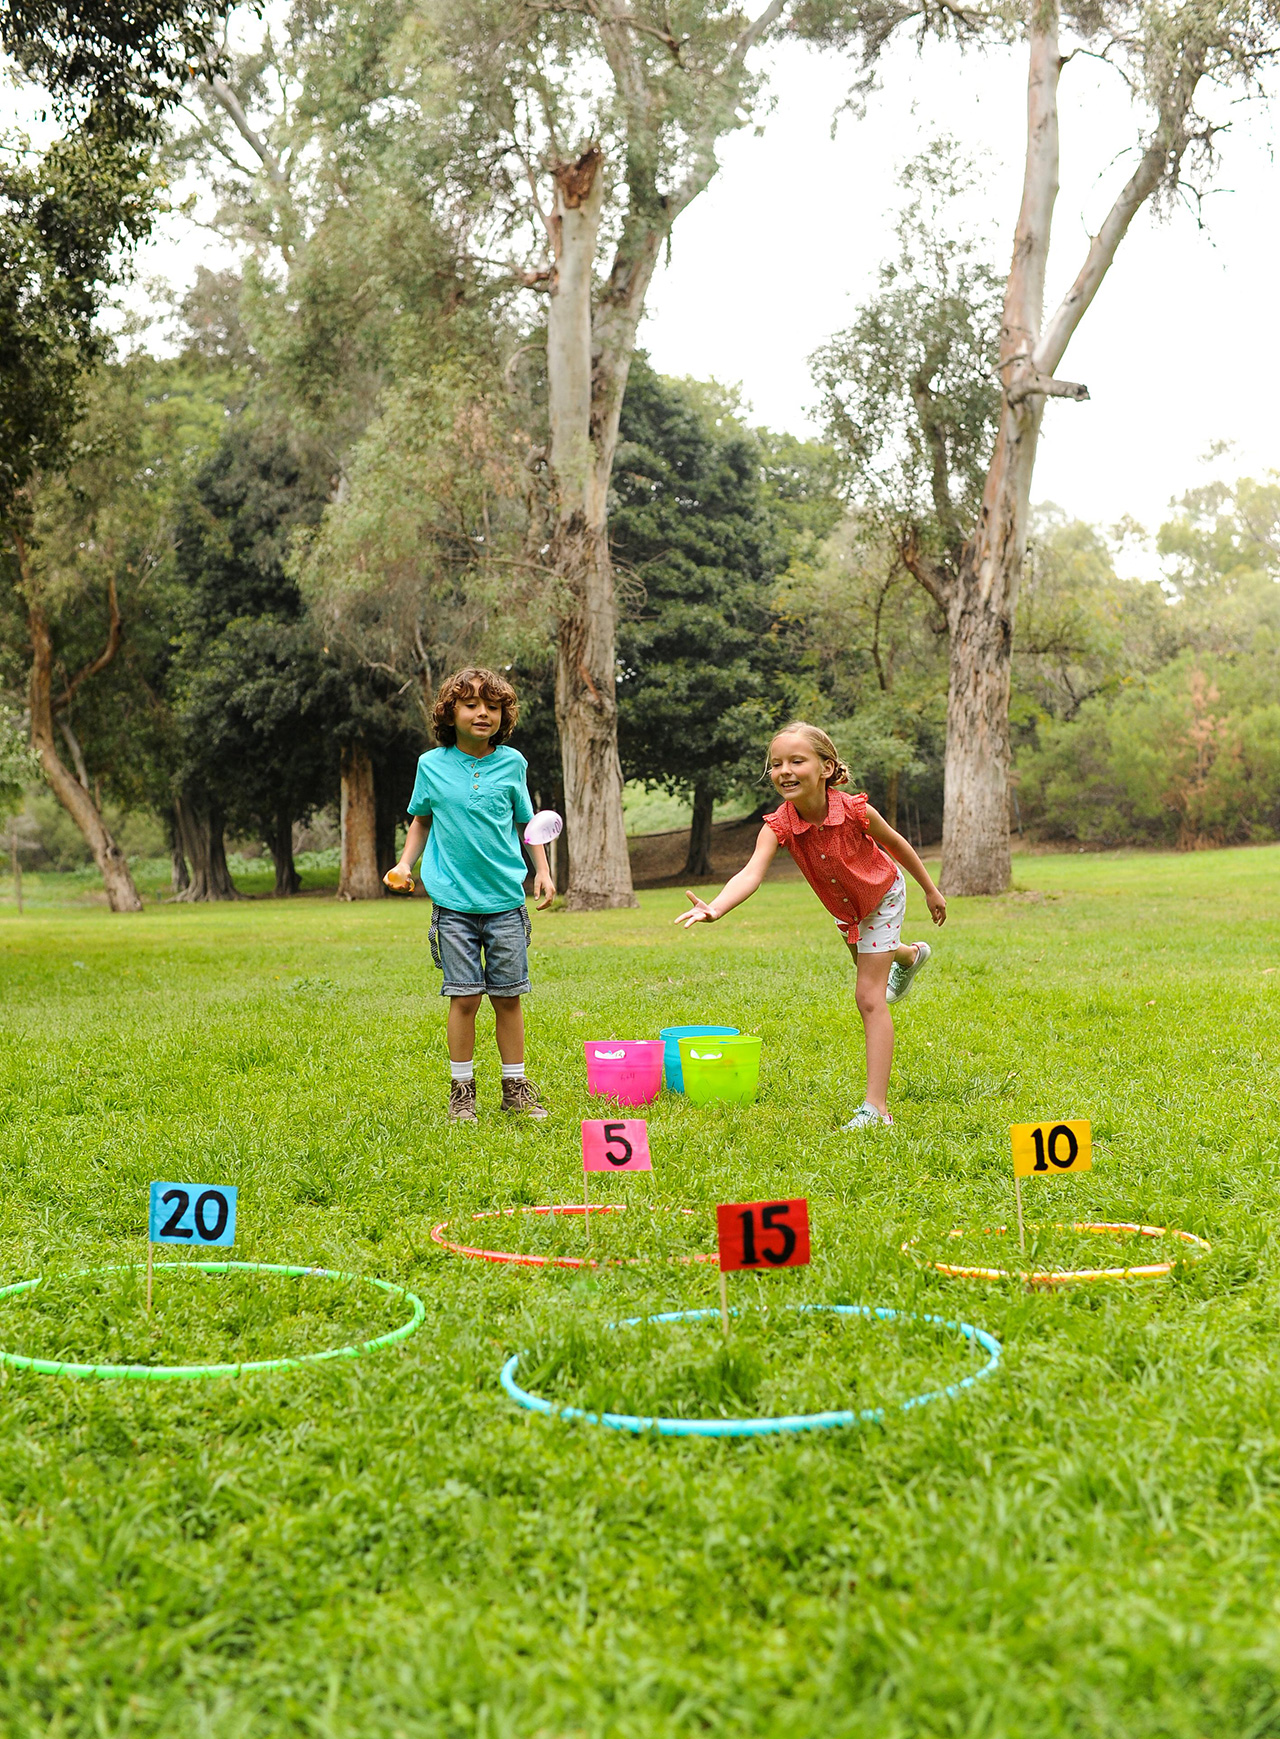 kids playing water balloon toss game with hula hoops